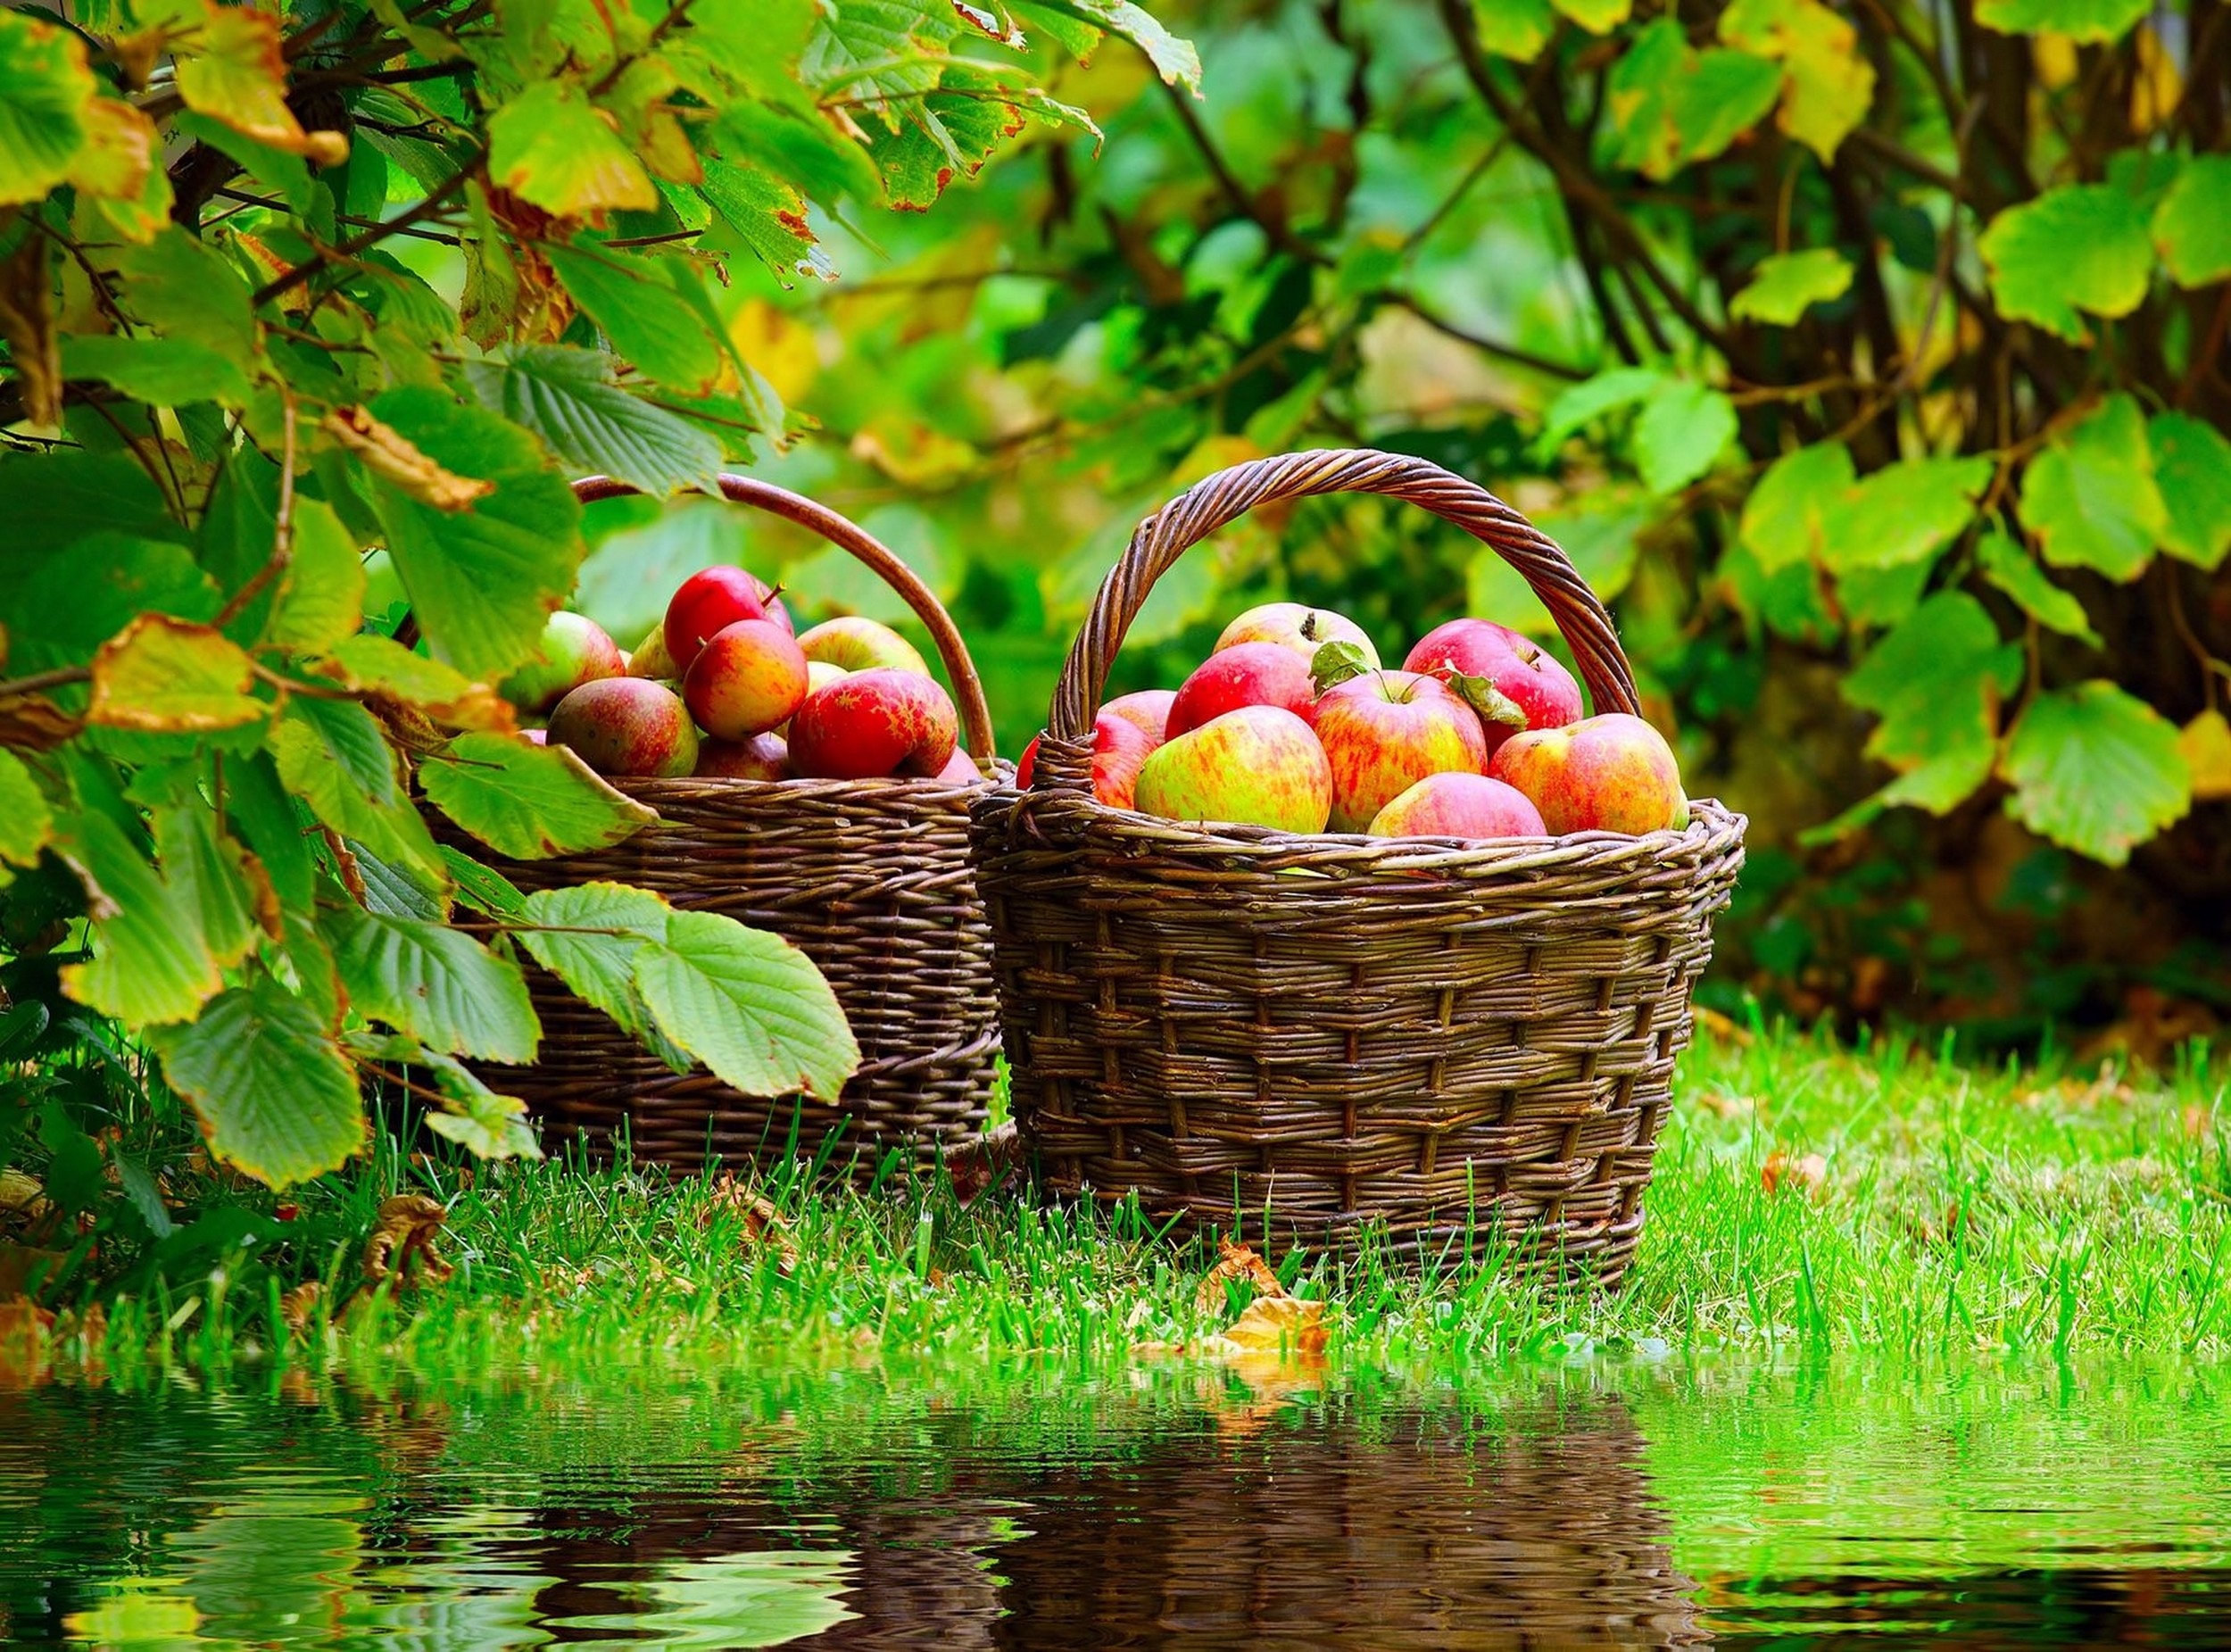 Res: 2500x1851, Ripe Apples In Basket | 2500 x 1851 | Download | Close